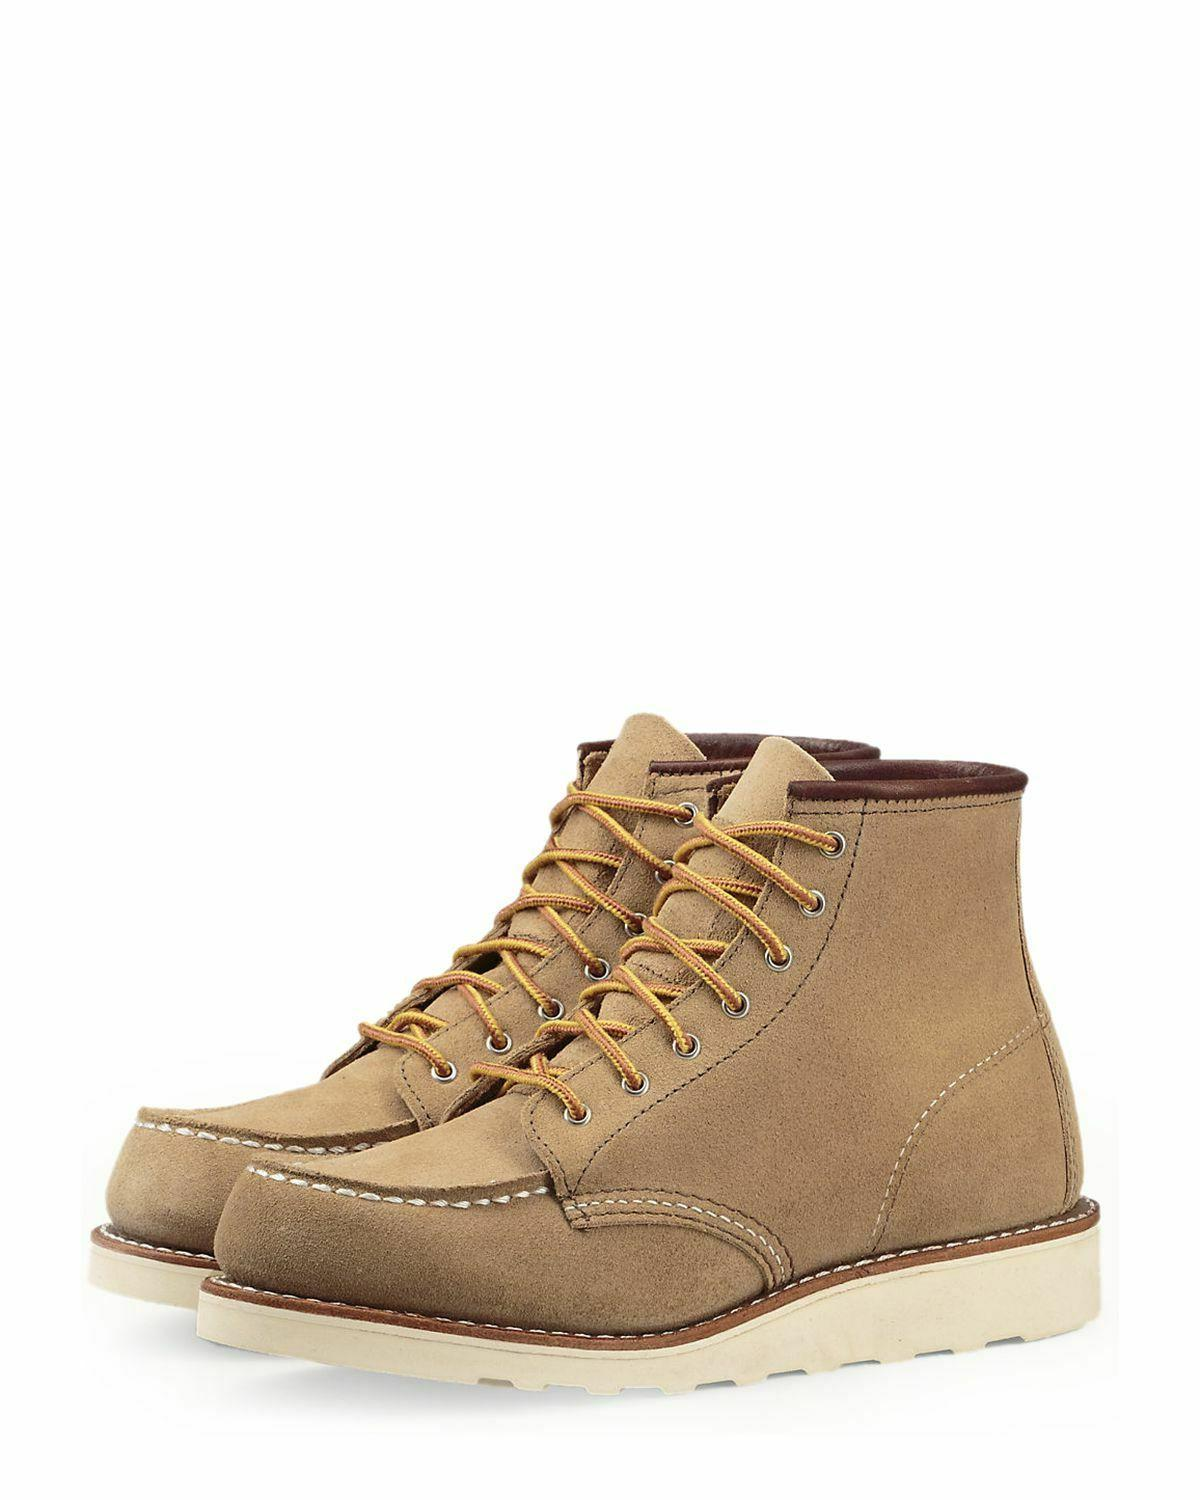 authentic women s red wing moc toe